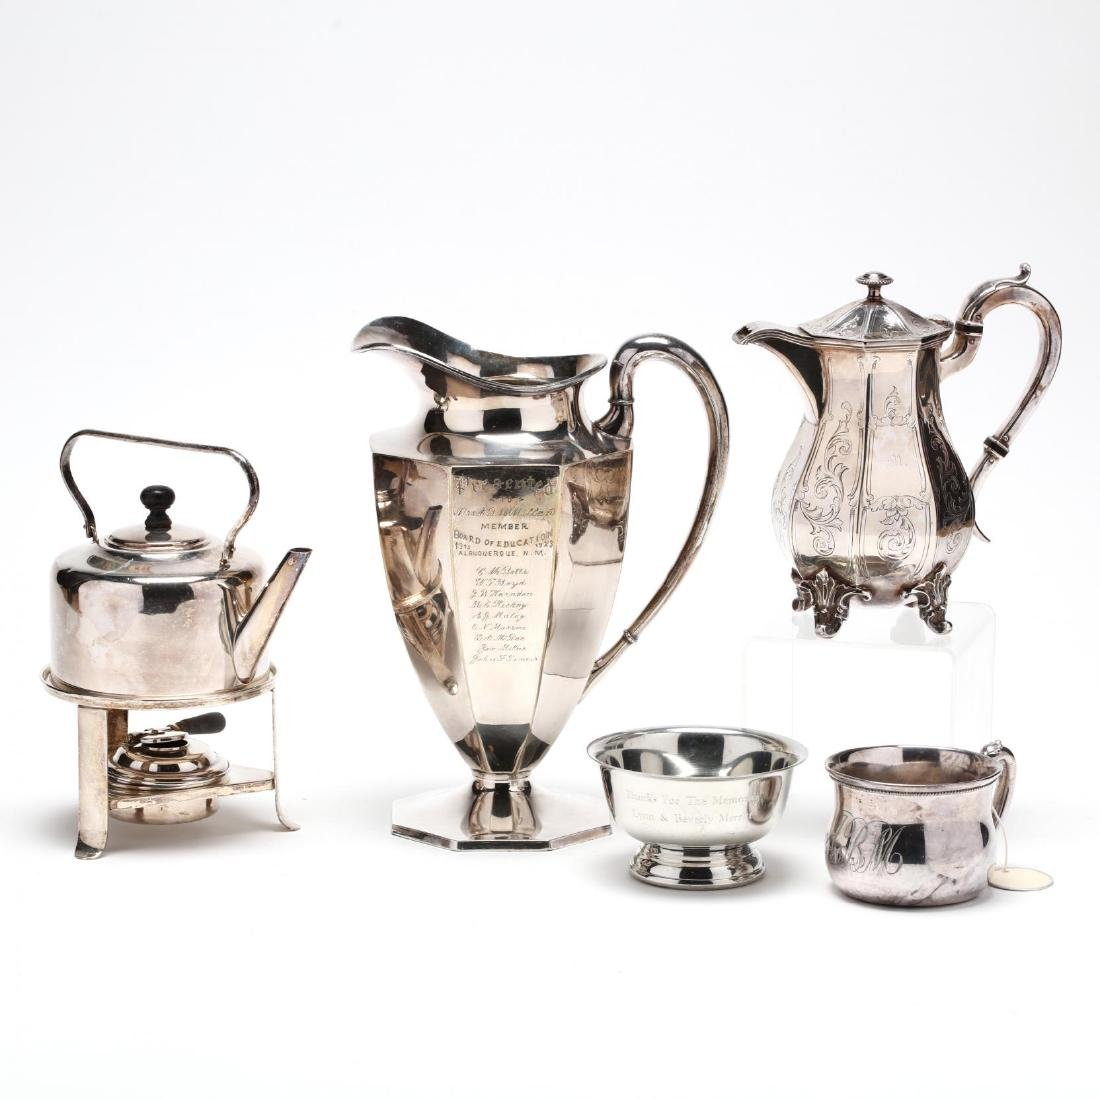 FIve Vintage Silverplate & Pewter Table Articles